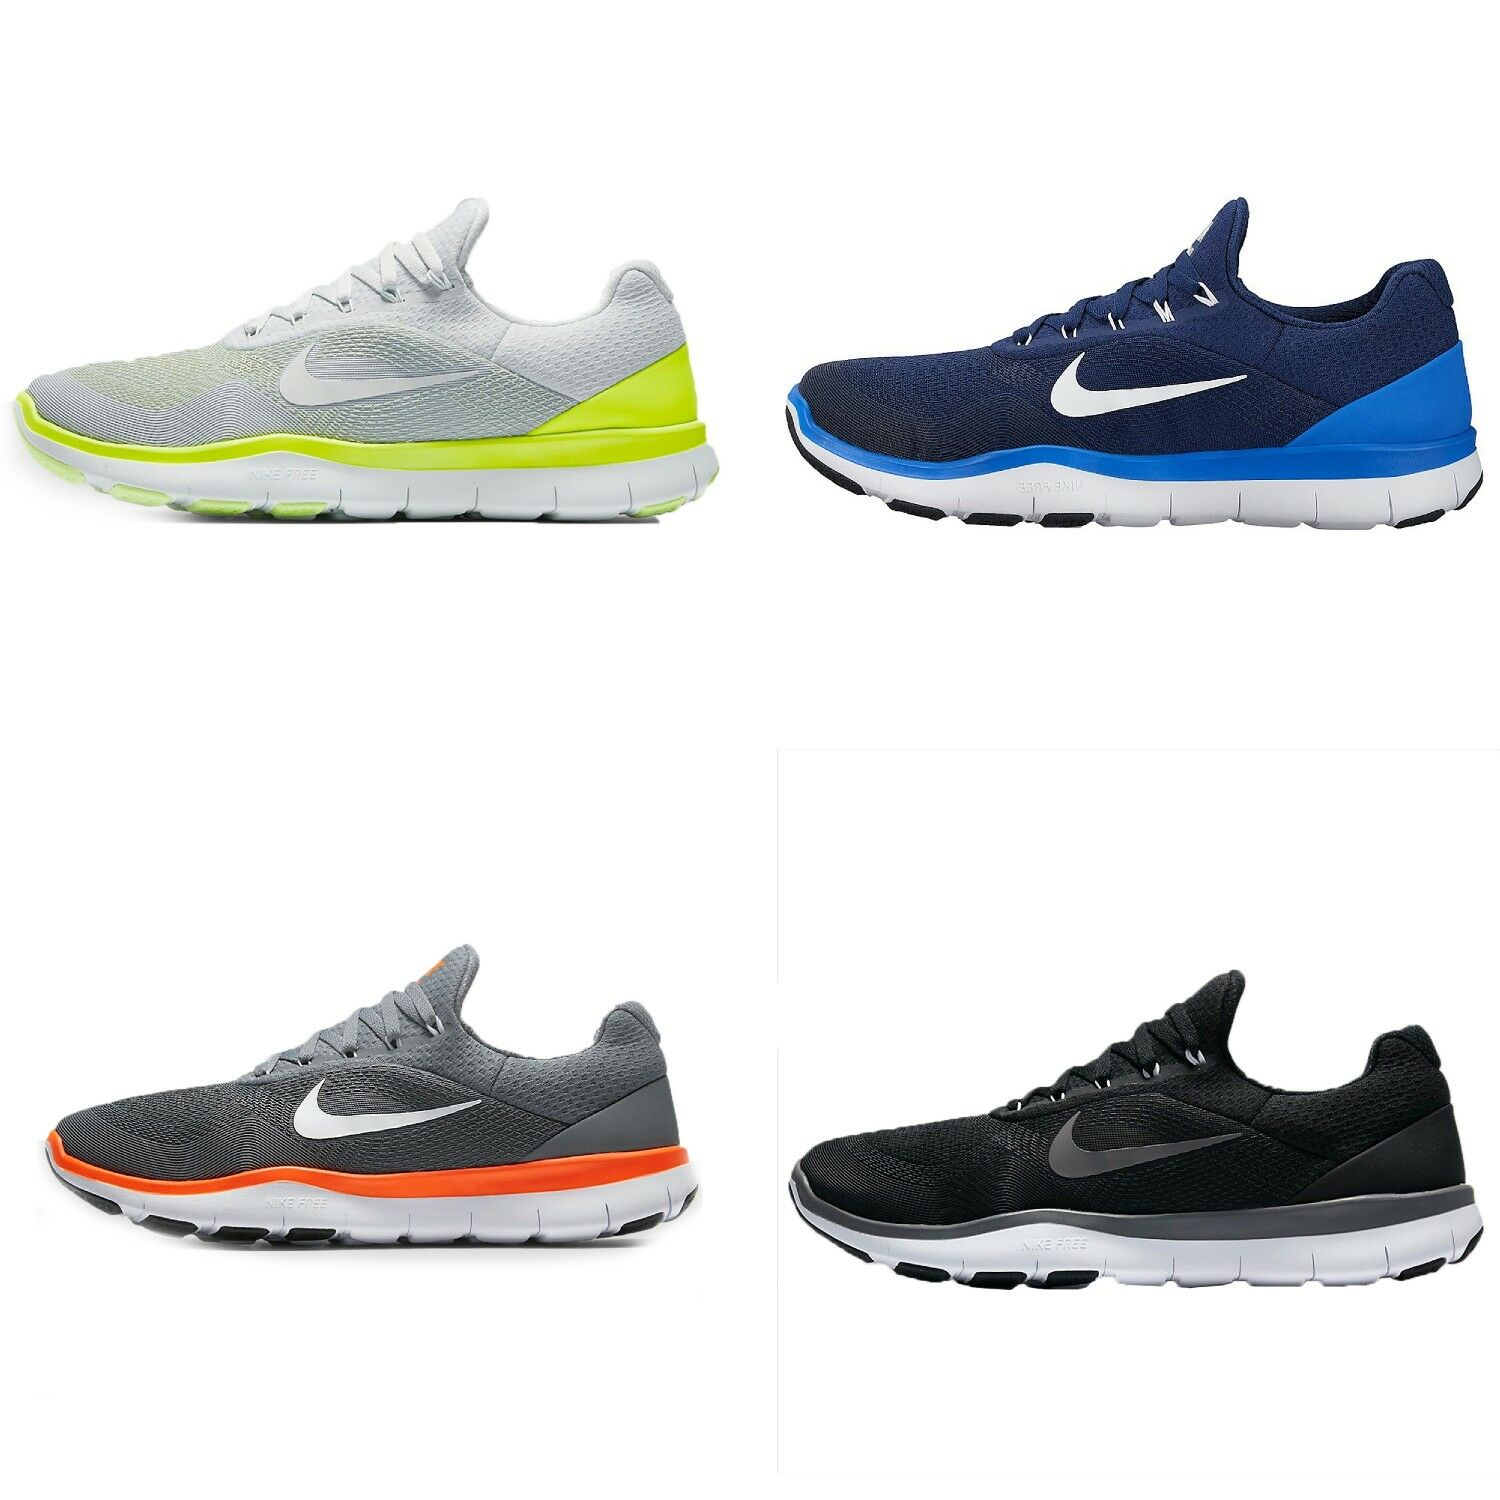 Nike Free Trainer V7 Running Shoe Sneaker Training Shoes Trainers Textile New shoes for men and women, limited time discount